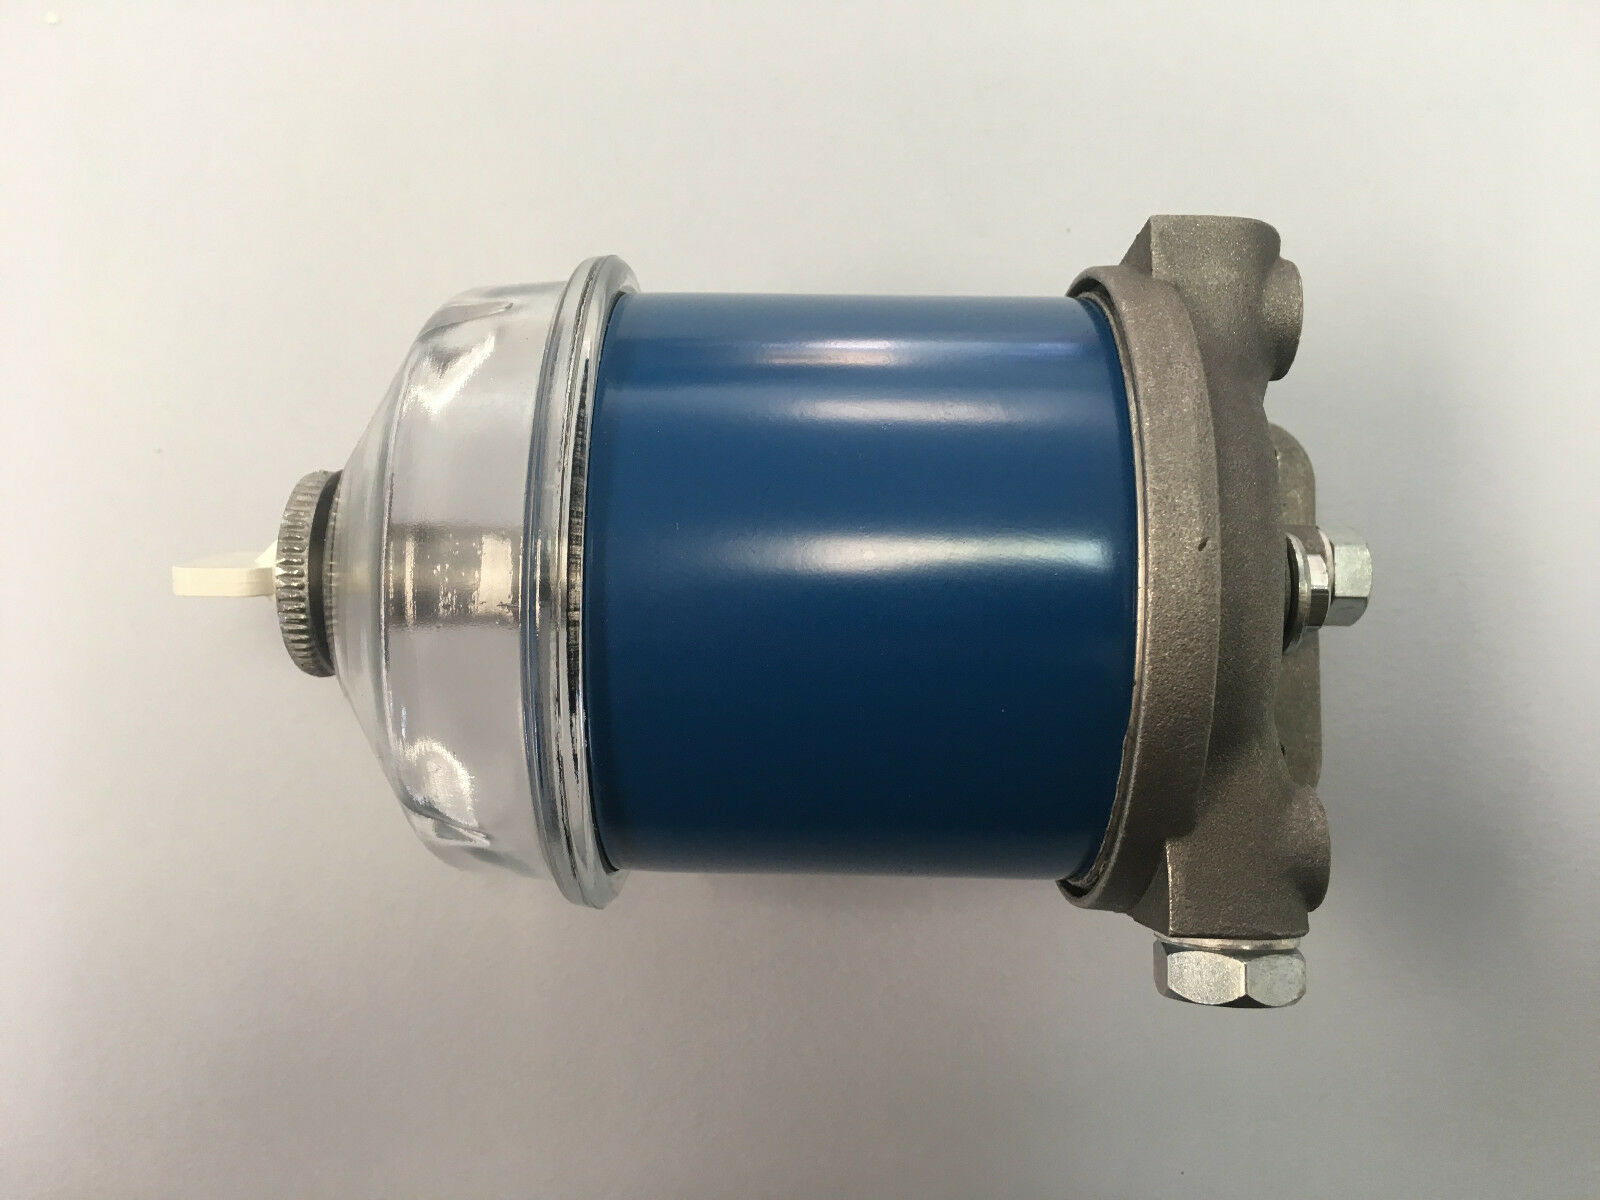 Massey Ferguson Tractor CAV Fuel Filter Assembly 135 150 1447072M91  1876507M91 1 of 3Only 5 available ...